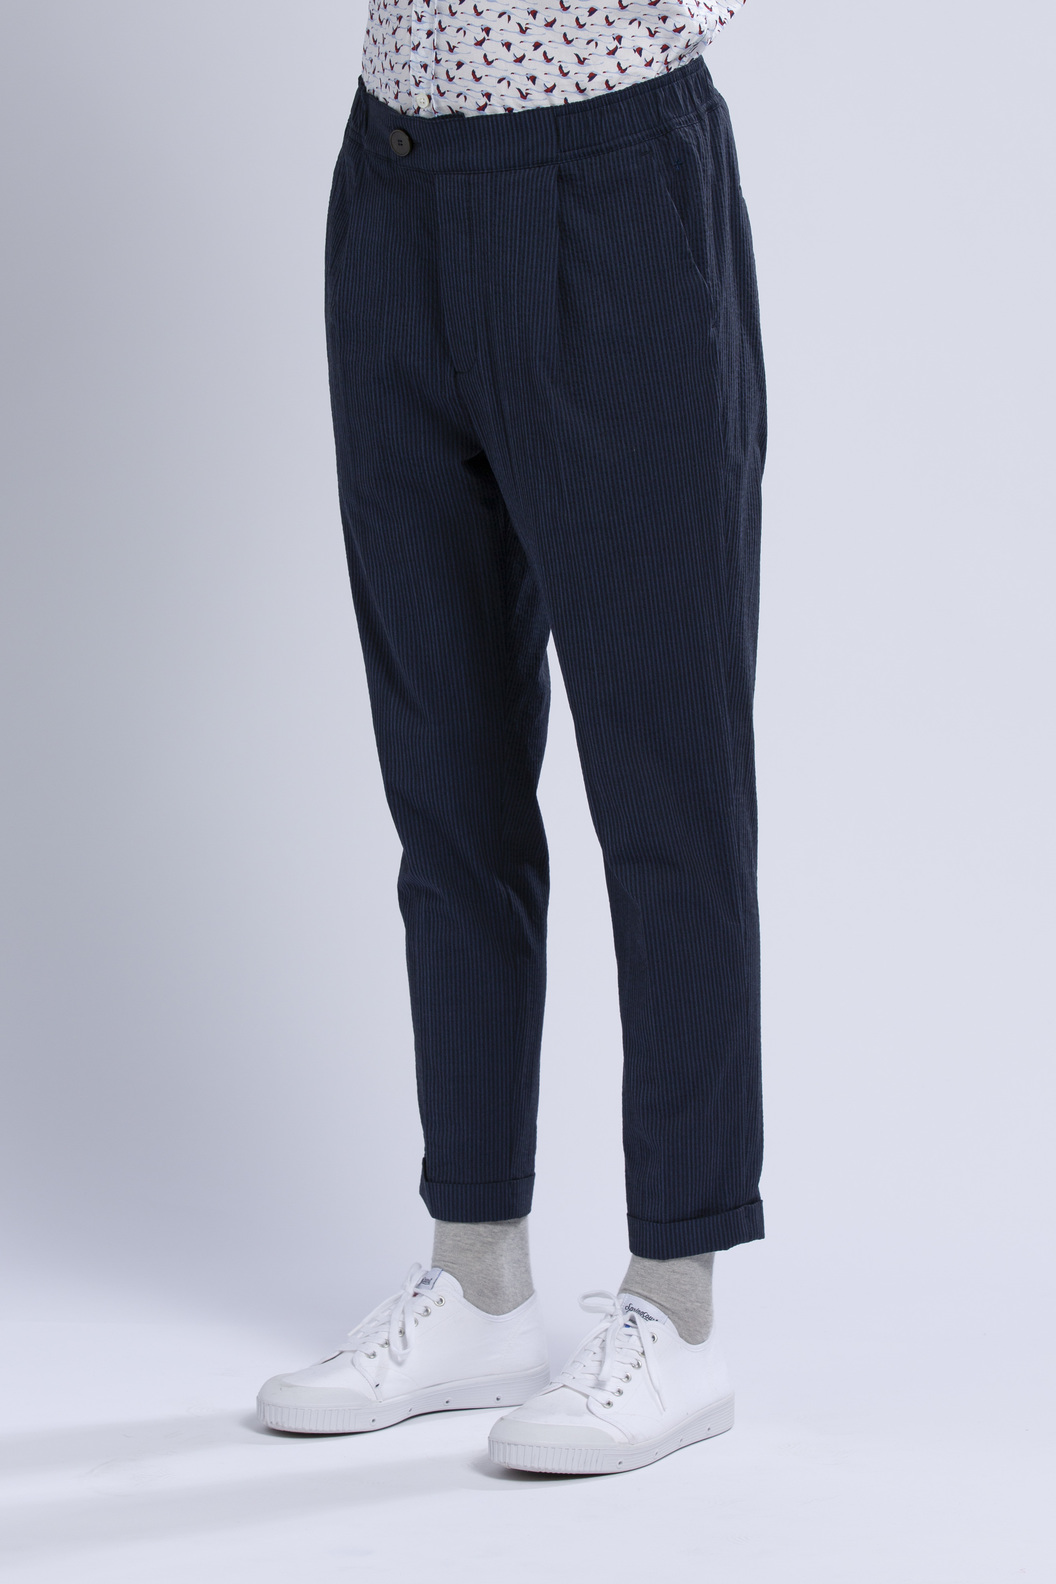 PANTS GN11 - Navy stripes